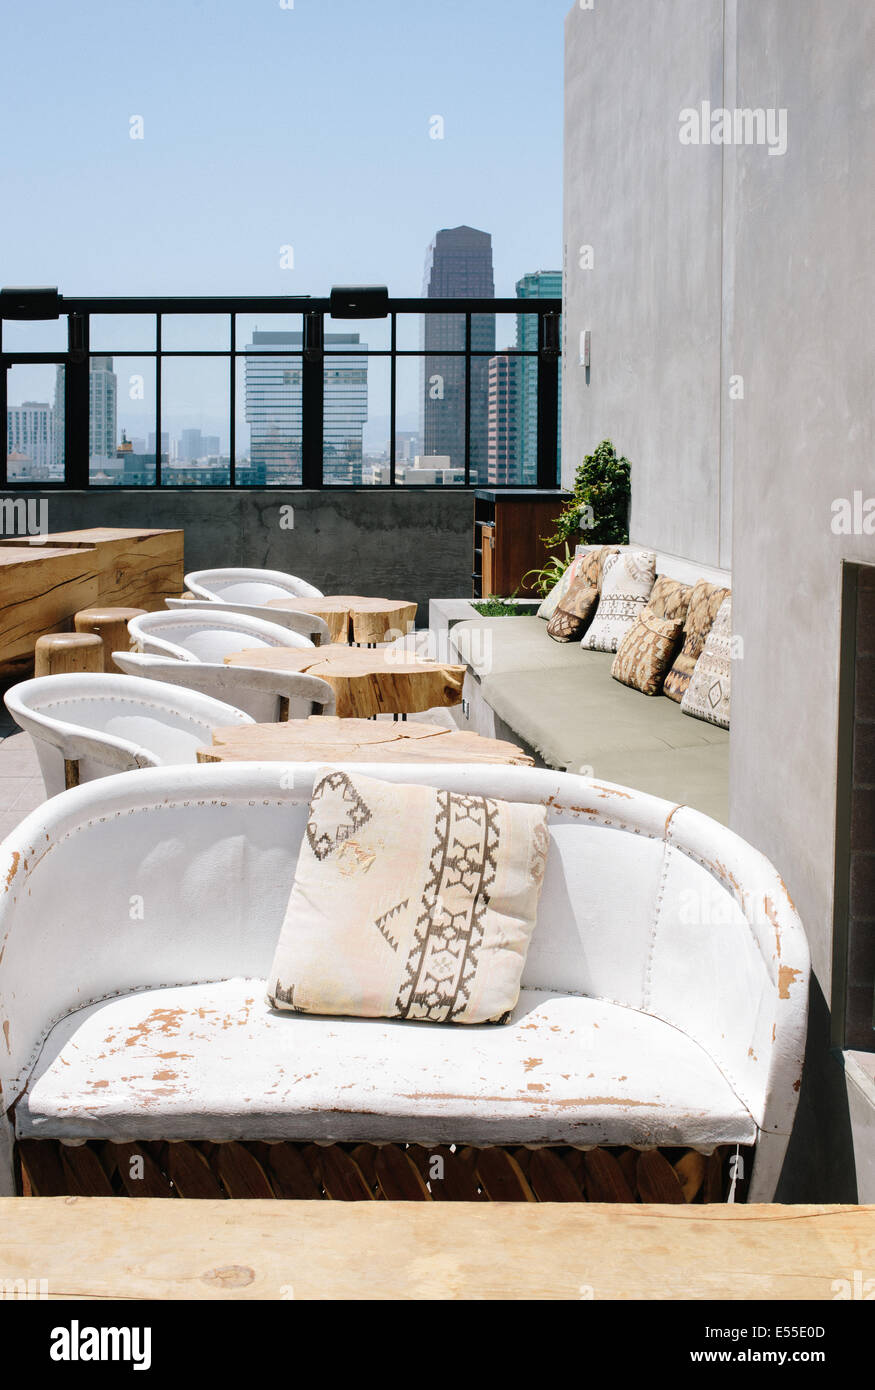 rooftop seating with distressed loveseats and los angeles skyline in